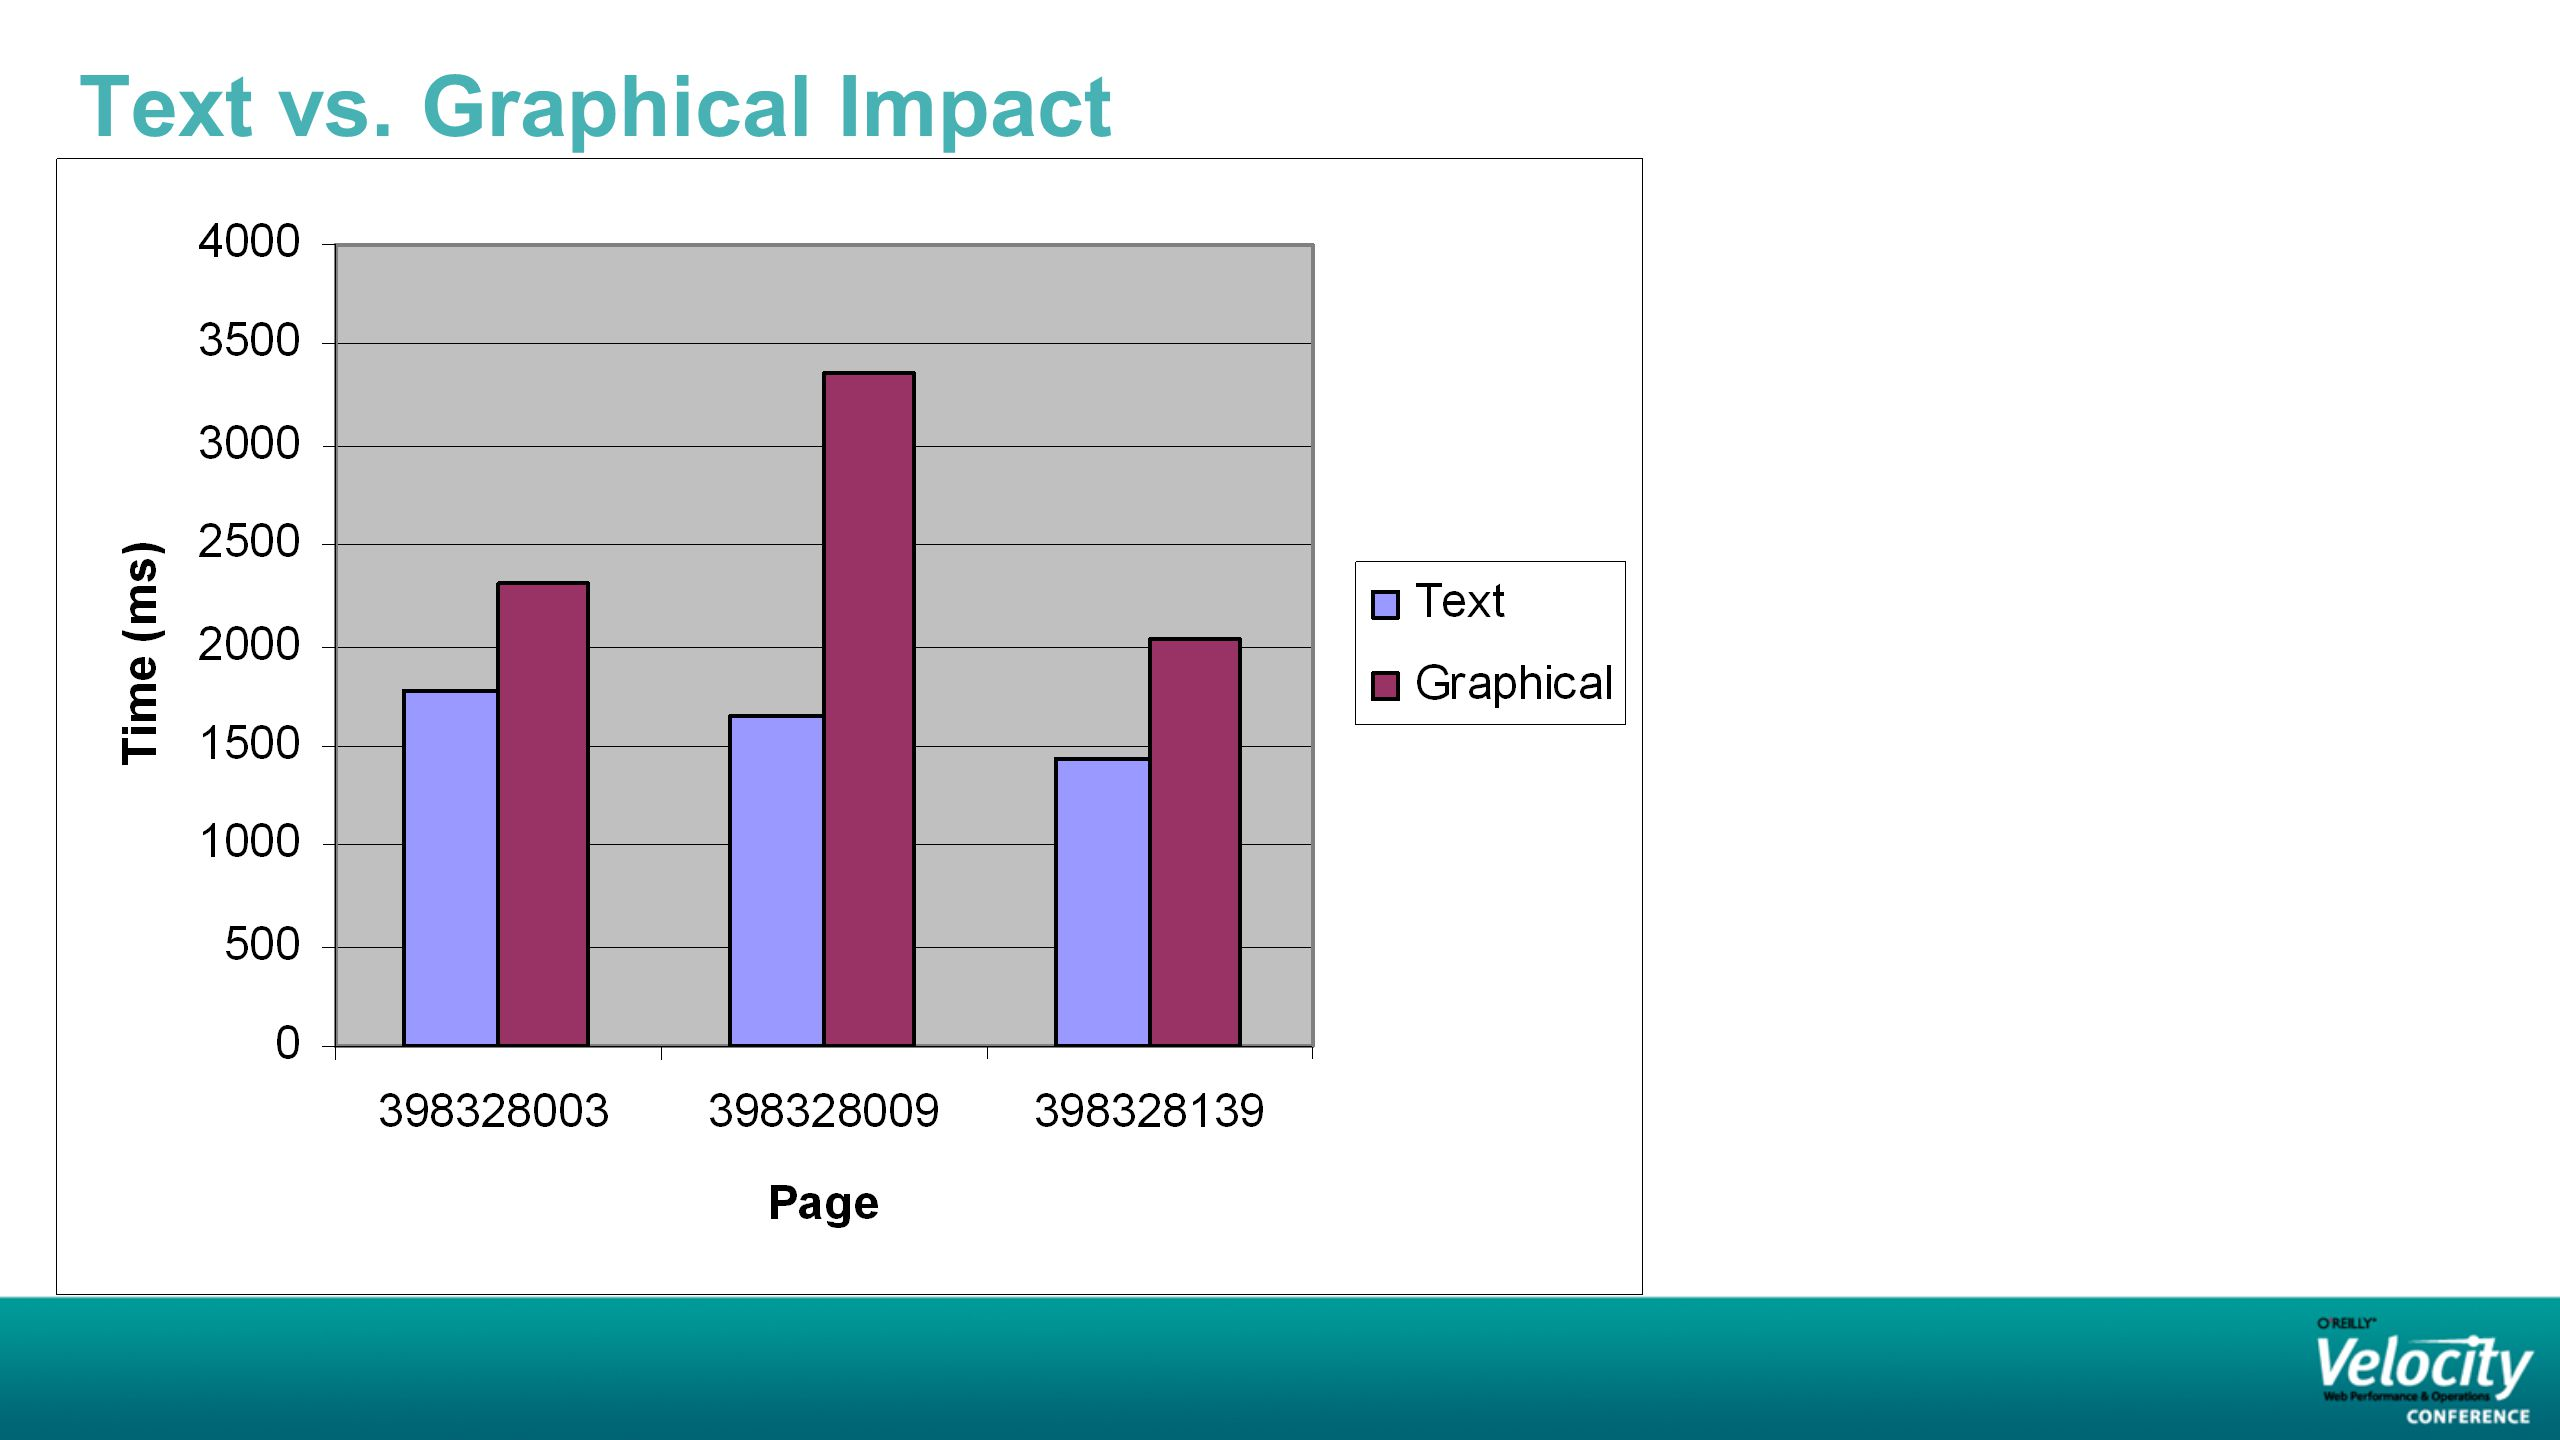 Text vs. Graphical Impact